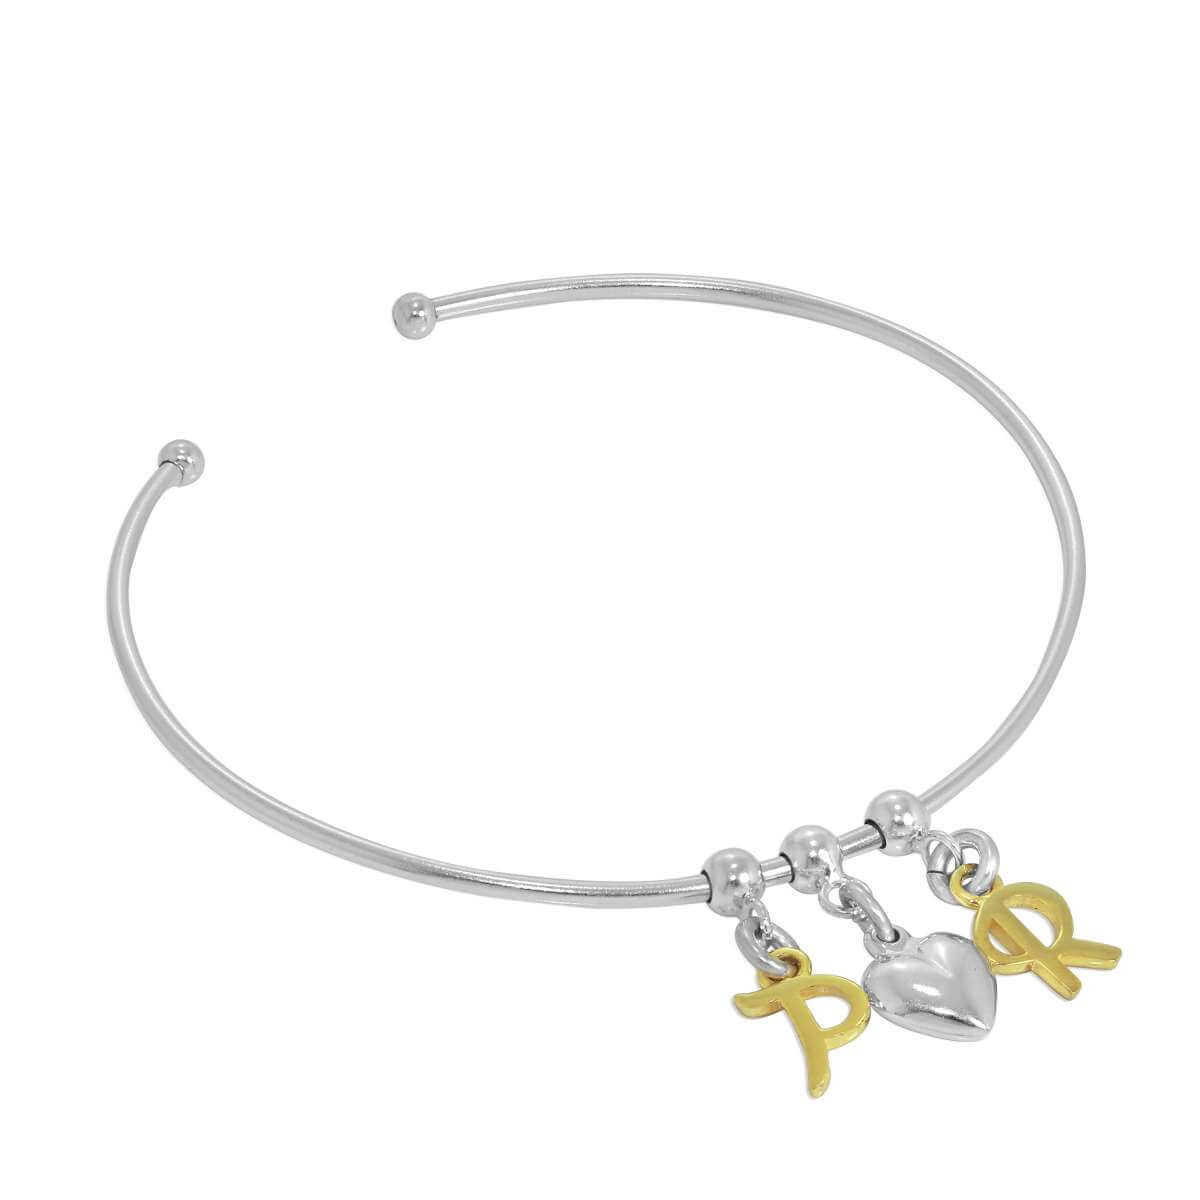 Gold Plated Sterling Silver Initial Letter & Heart Adjustable Cuff Charm Bangle